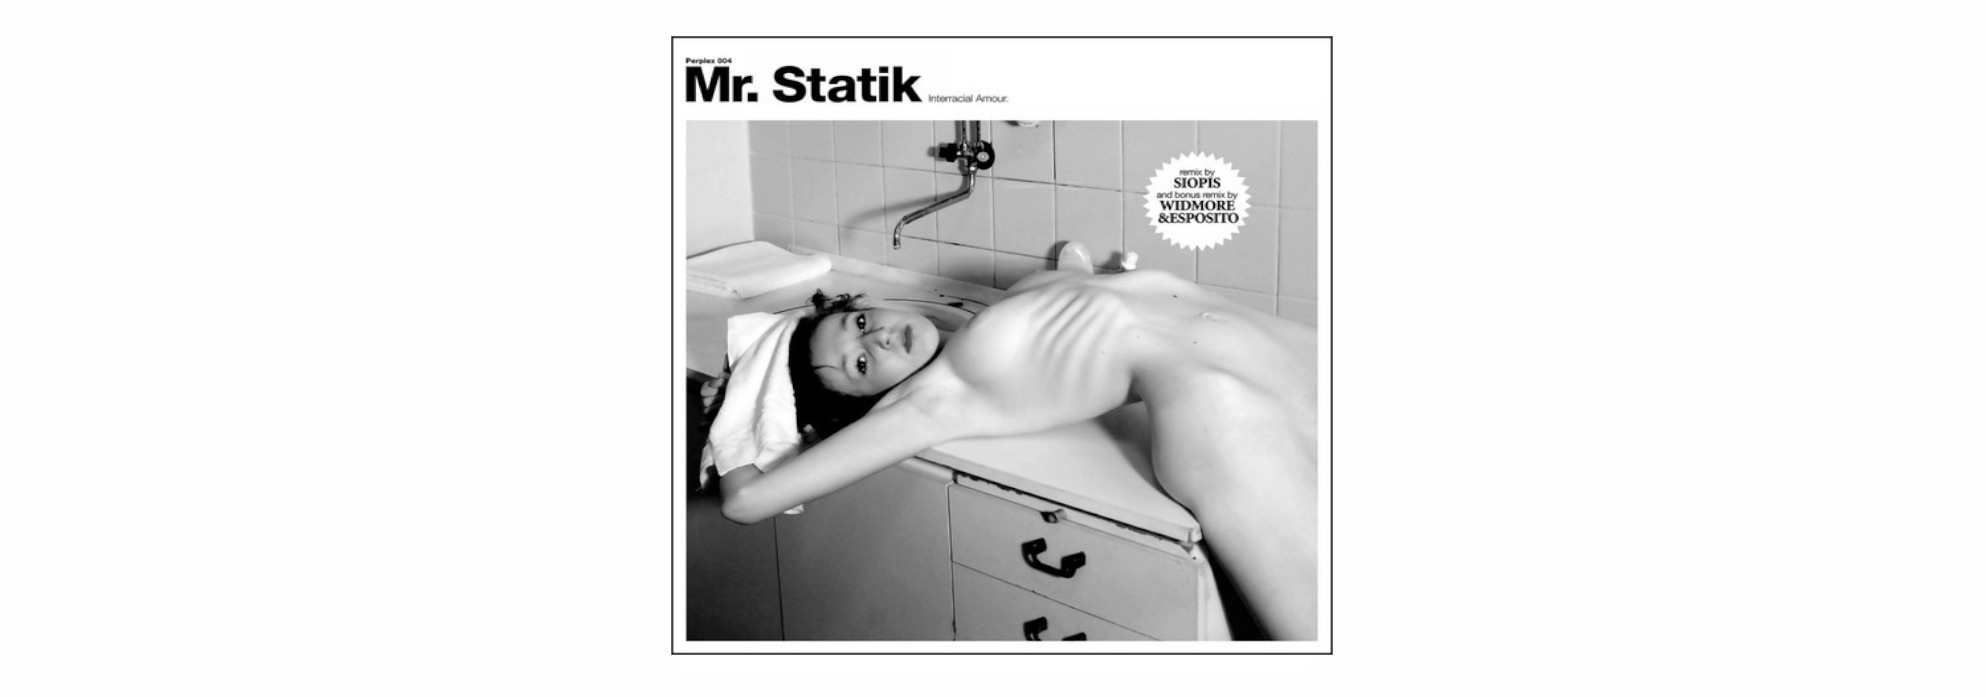 perplex recordings mr statik